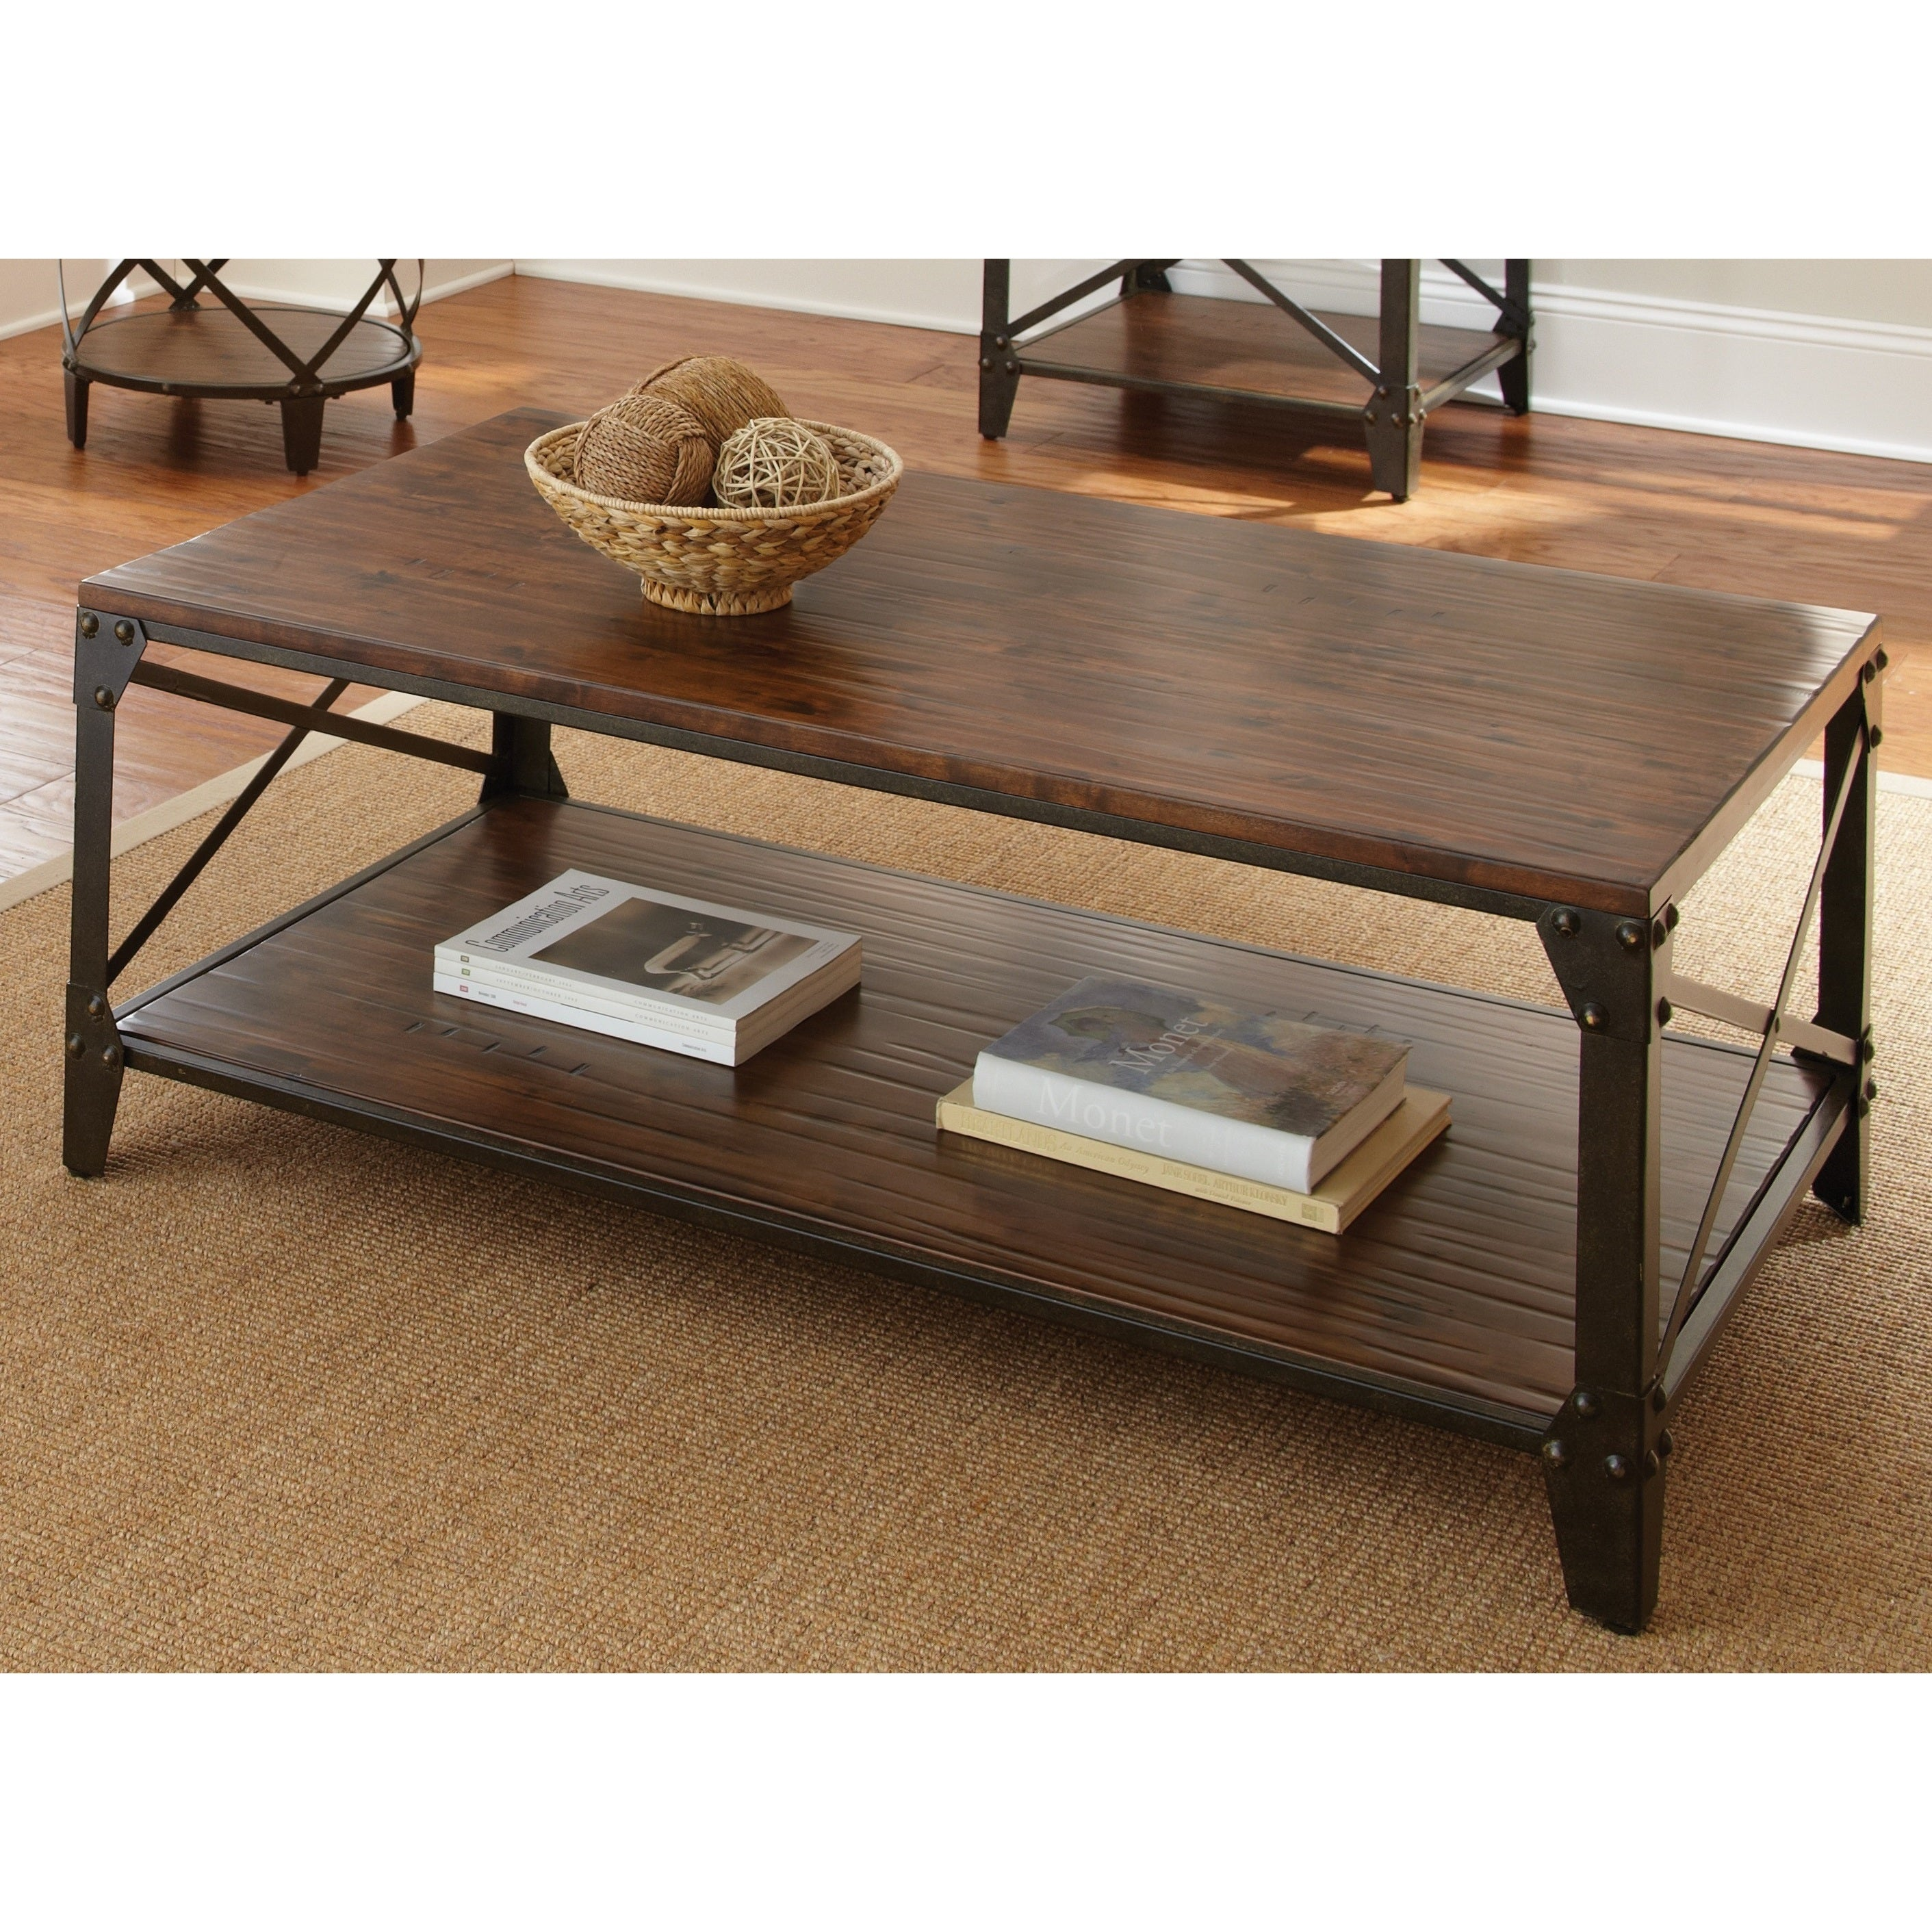 Solid Wood Coffee And End Tables For Sale: Shop Carbon Loft Fischer Brown Solid Birch And Iron Rustic